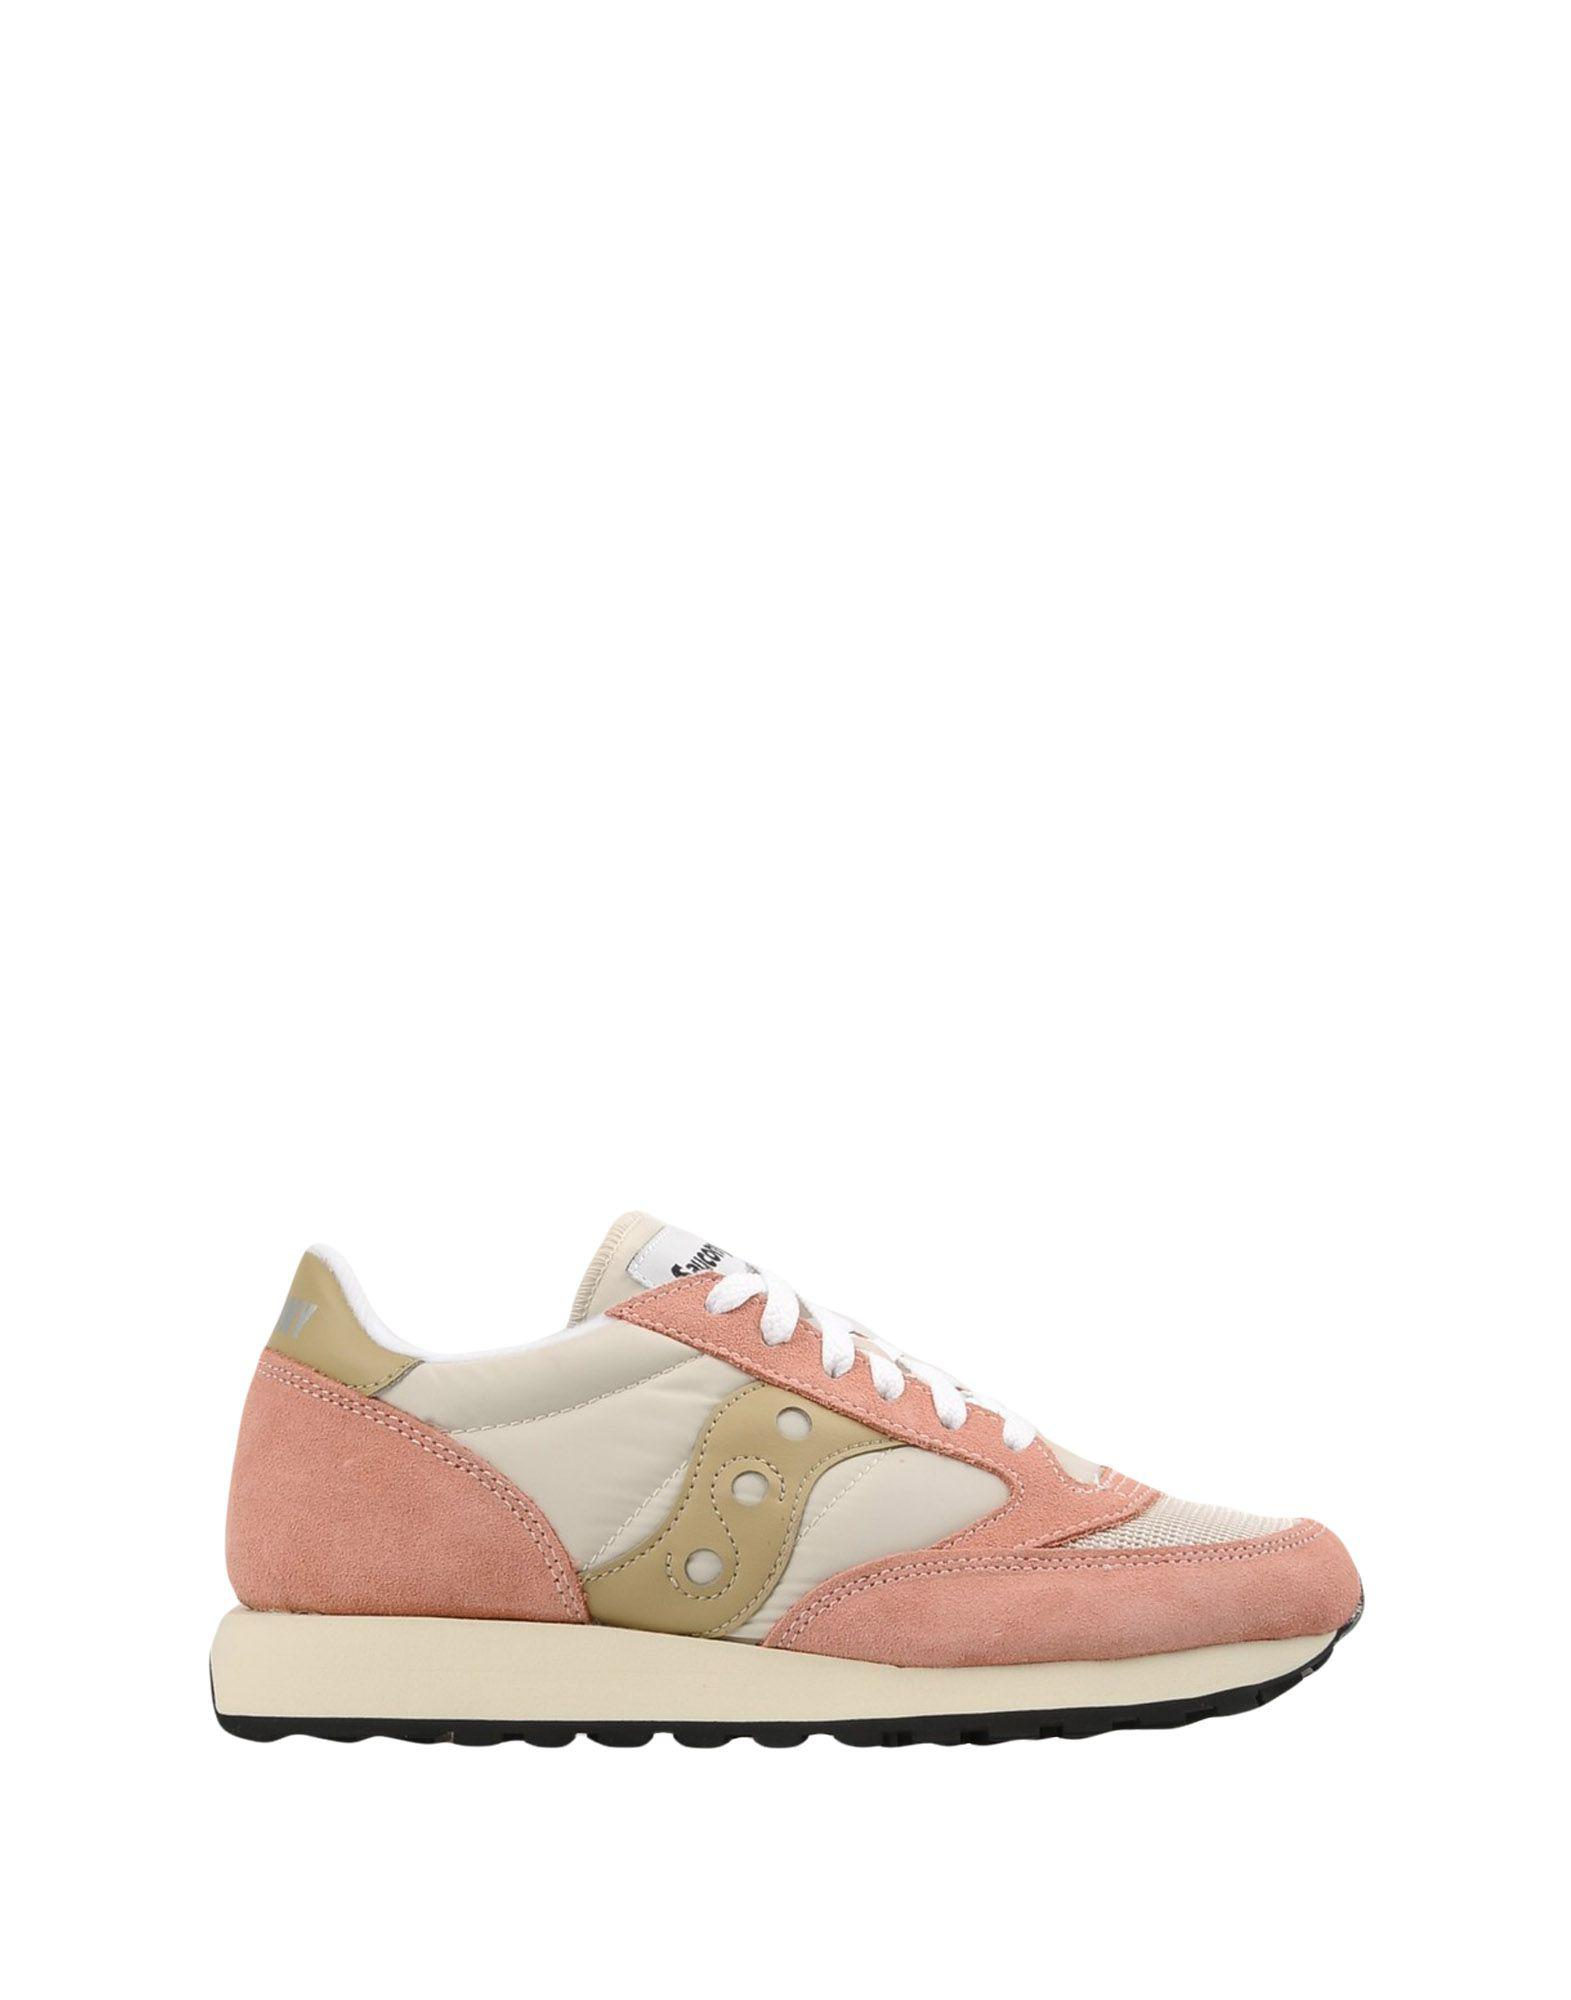 Saucony Suede Low-tops & Sneakers in Ivory (White)